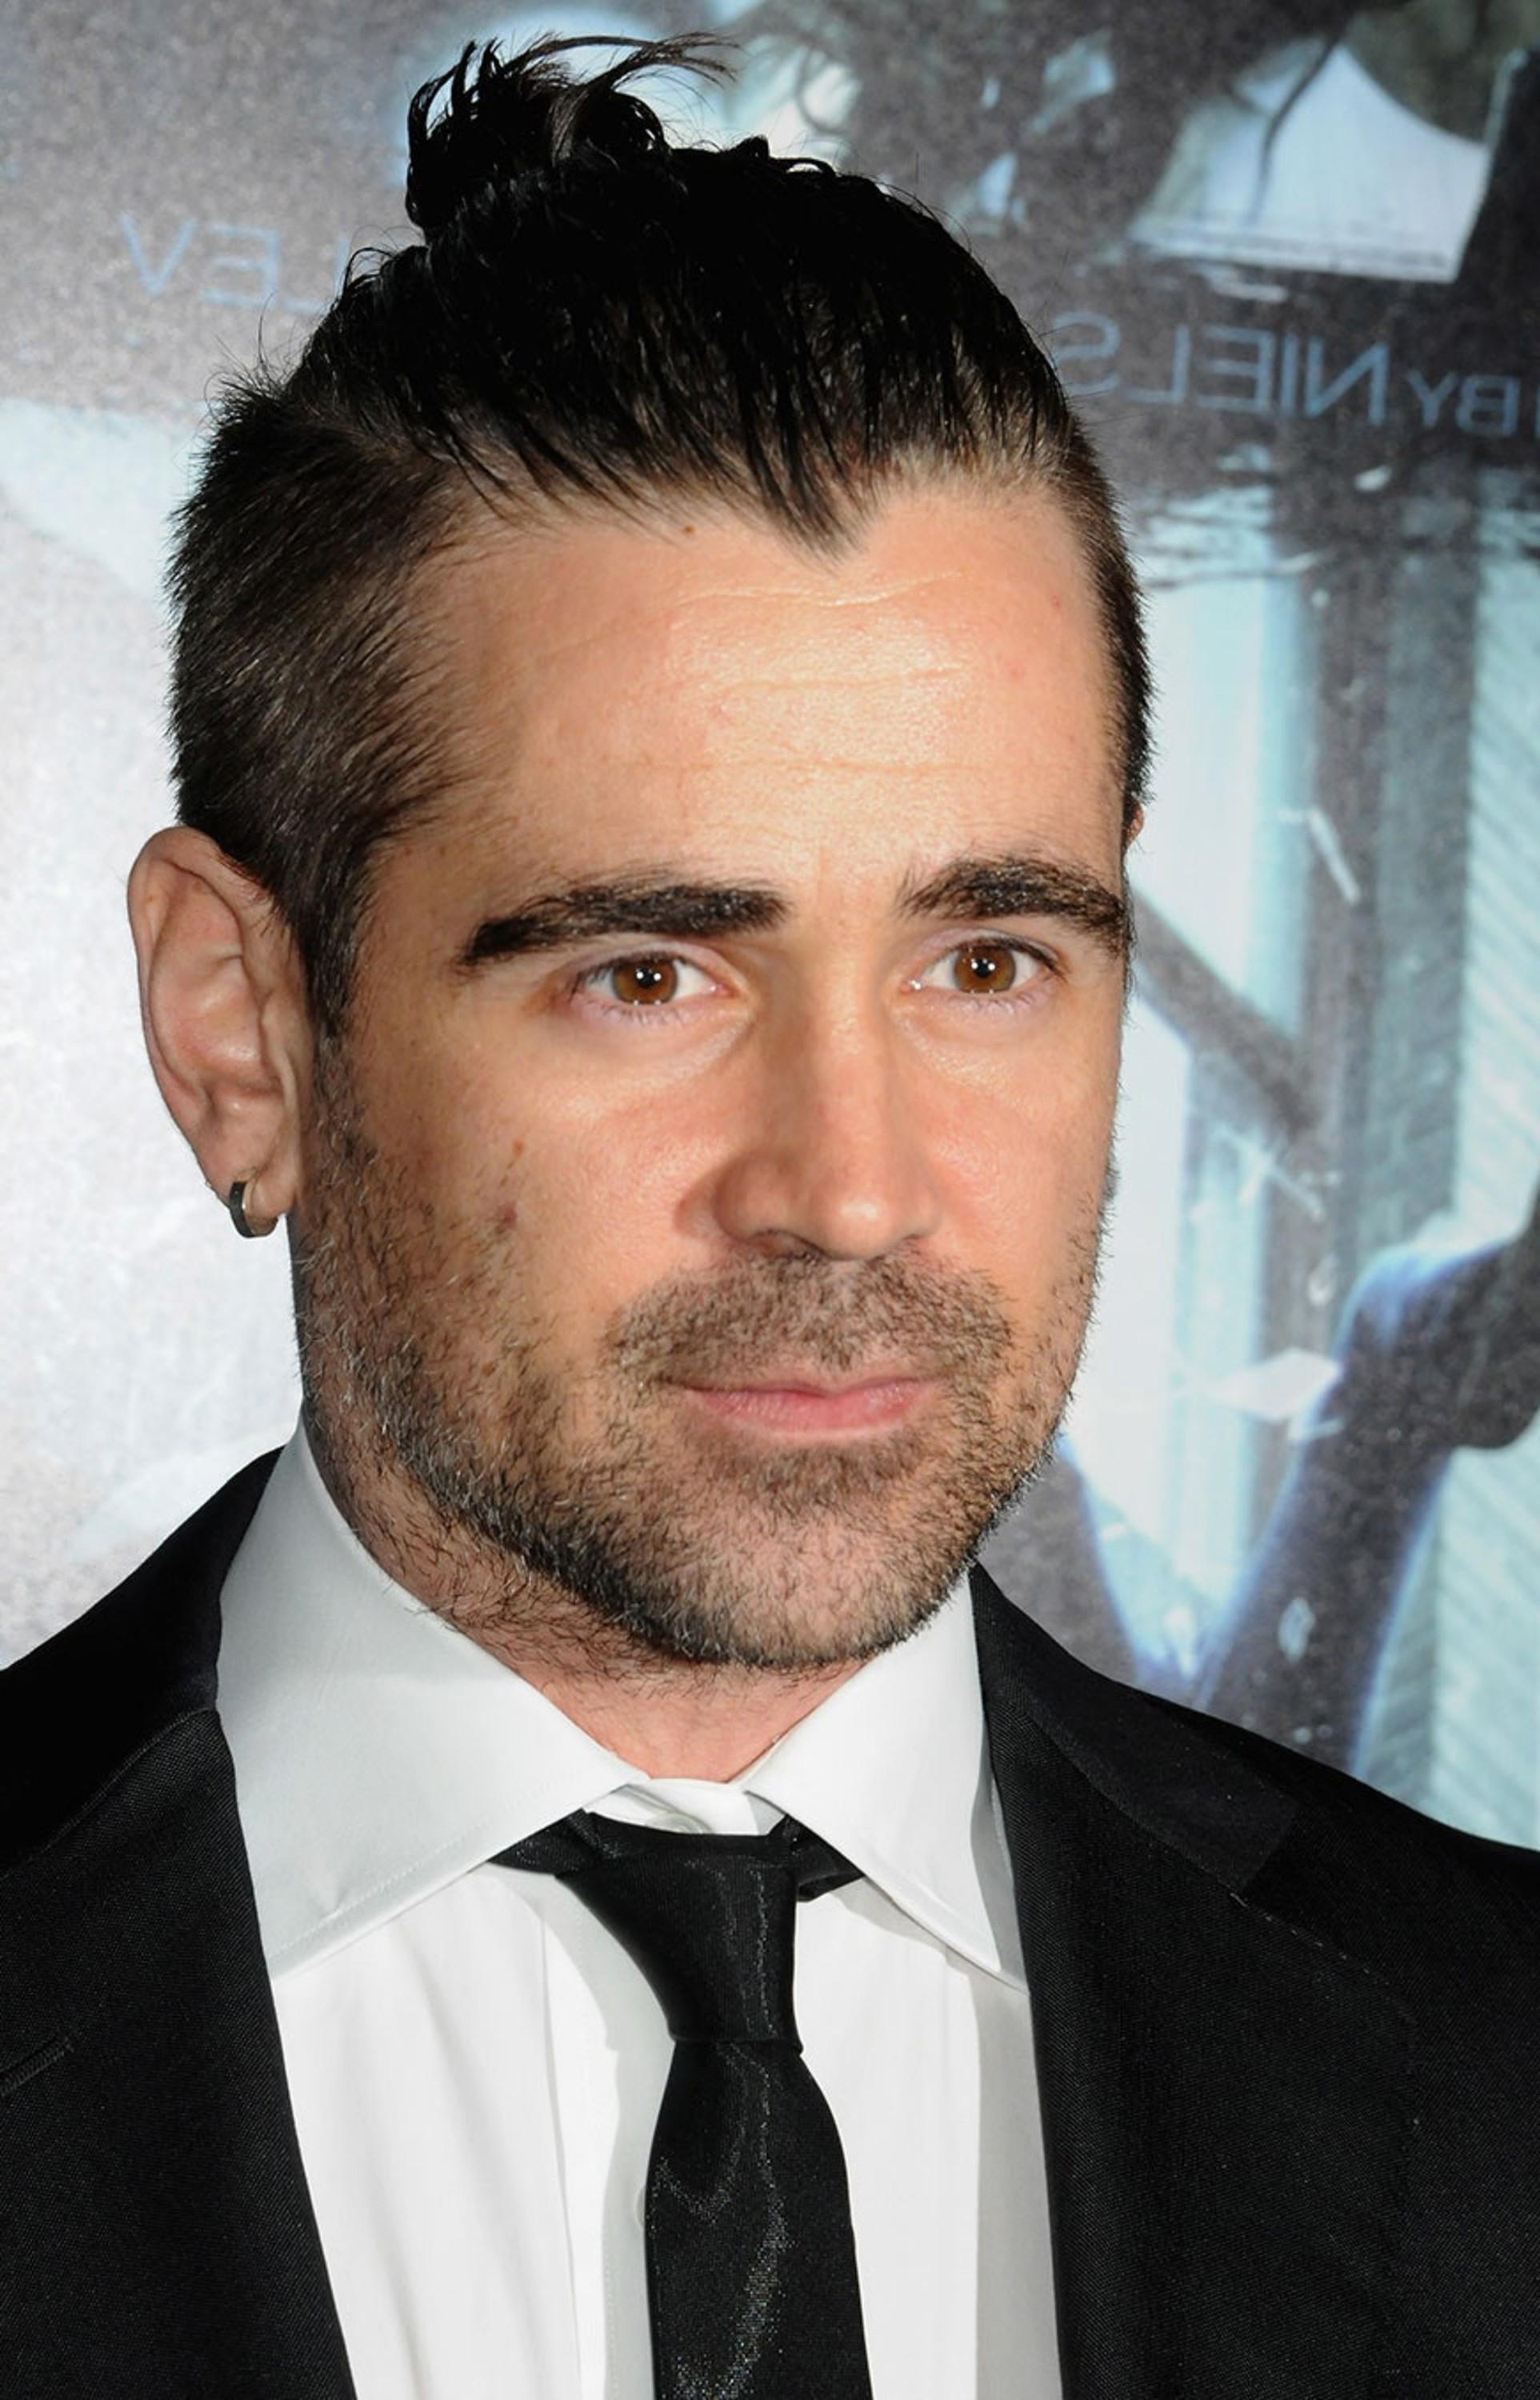 Colin Farrell with a cool bun style.